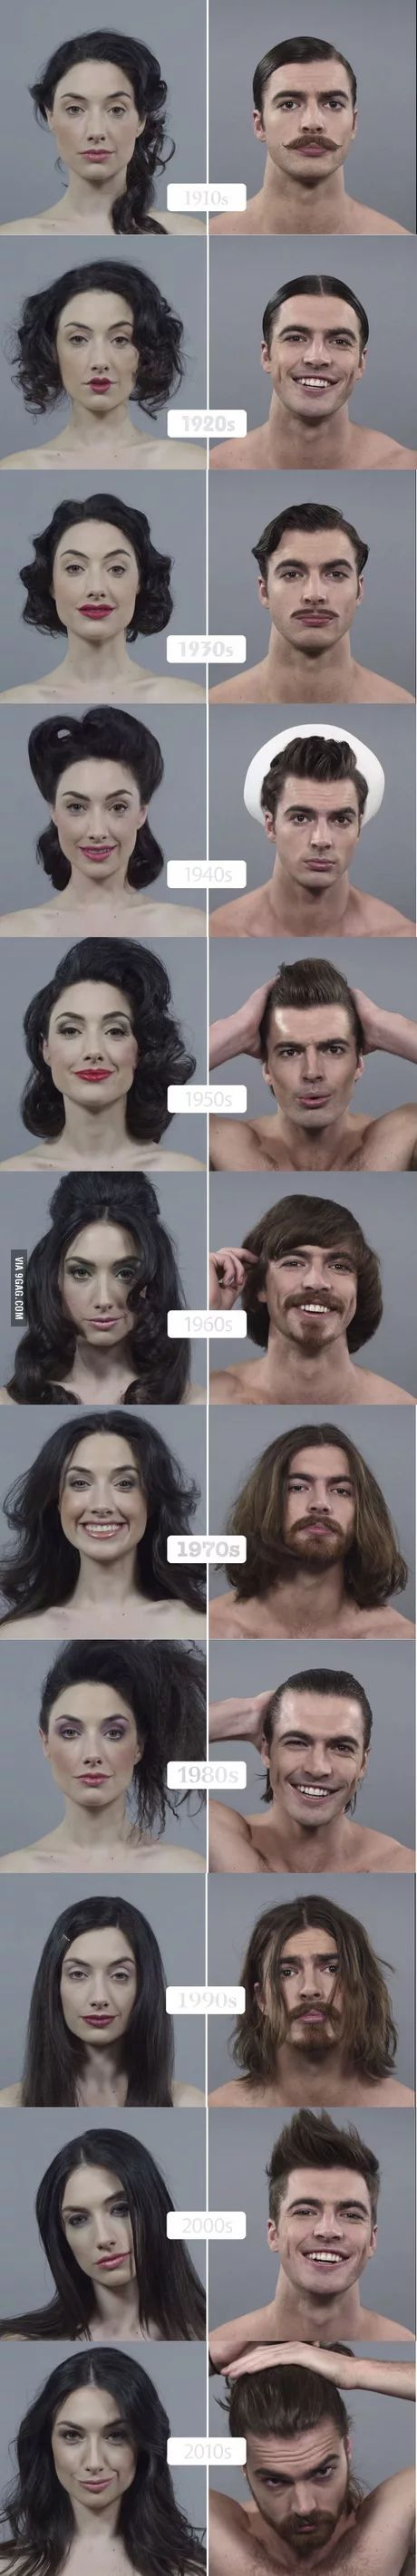 100 Years of Beauty in USA (Men and Women)